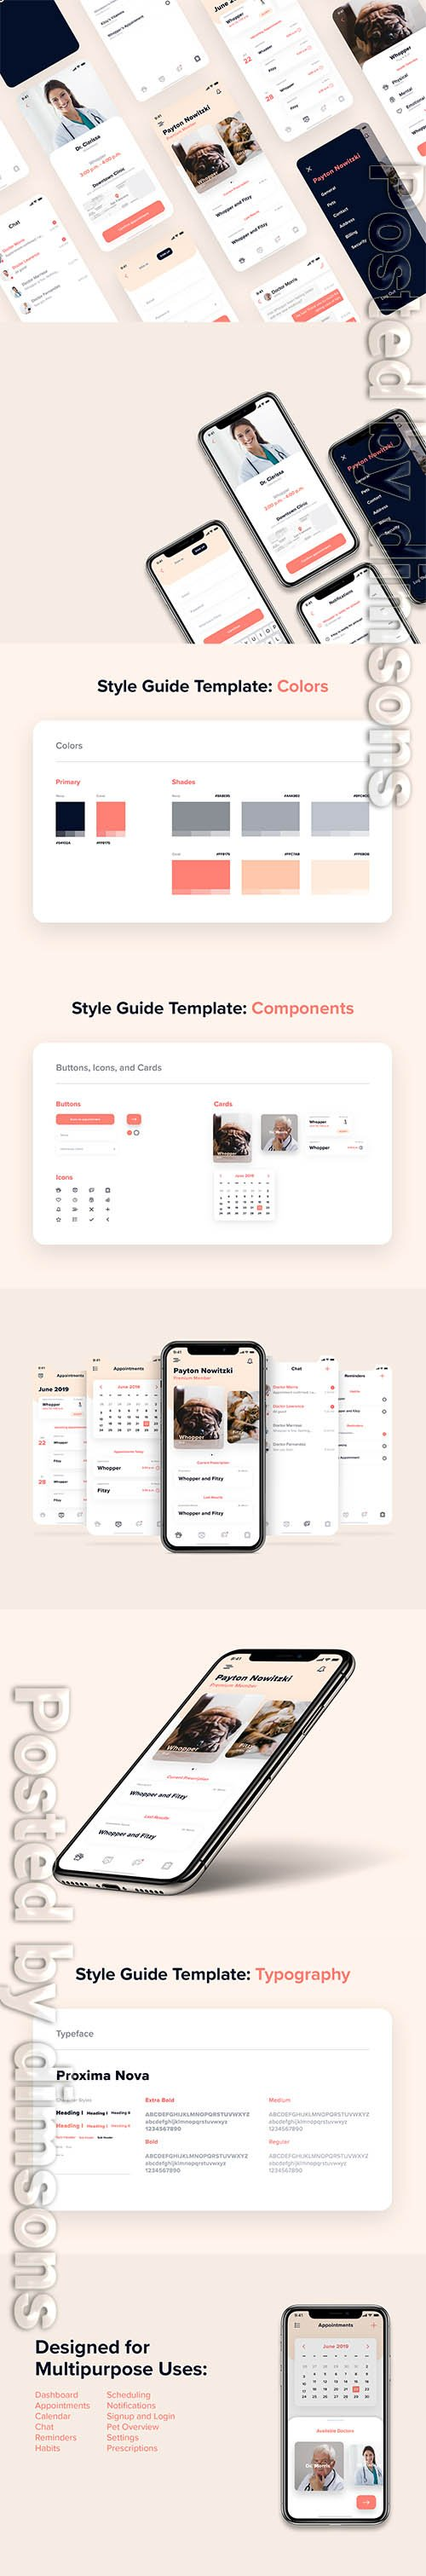 Petworld UI Kit for Adobe XD